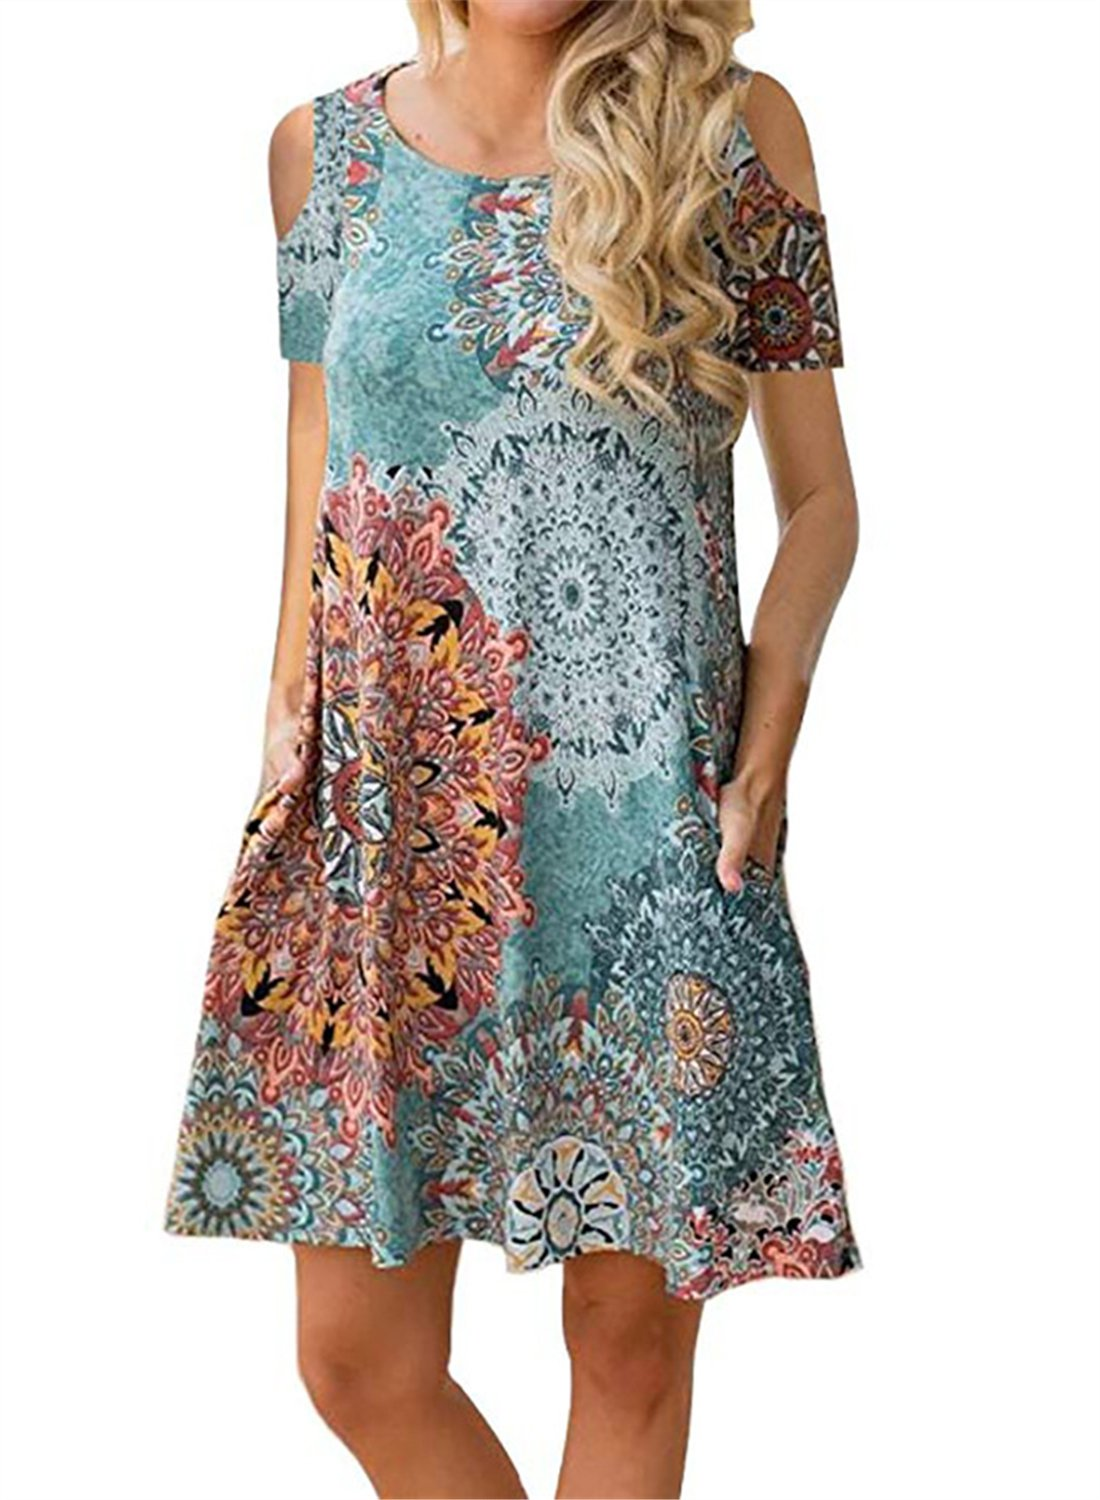 Mai Poetry Women's Floral Print Cold Shoulder Tunic Top Swing T-Shirt Loose Casual Dress with Pockets (Large, Flower 3)